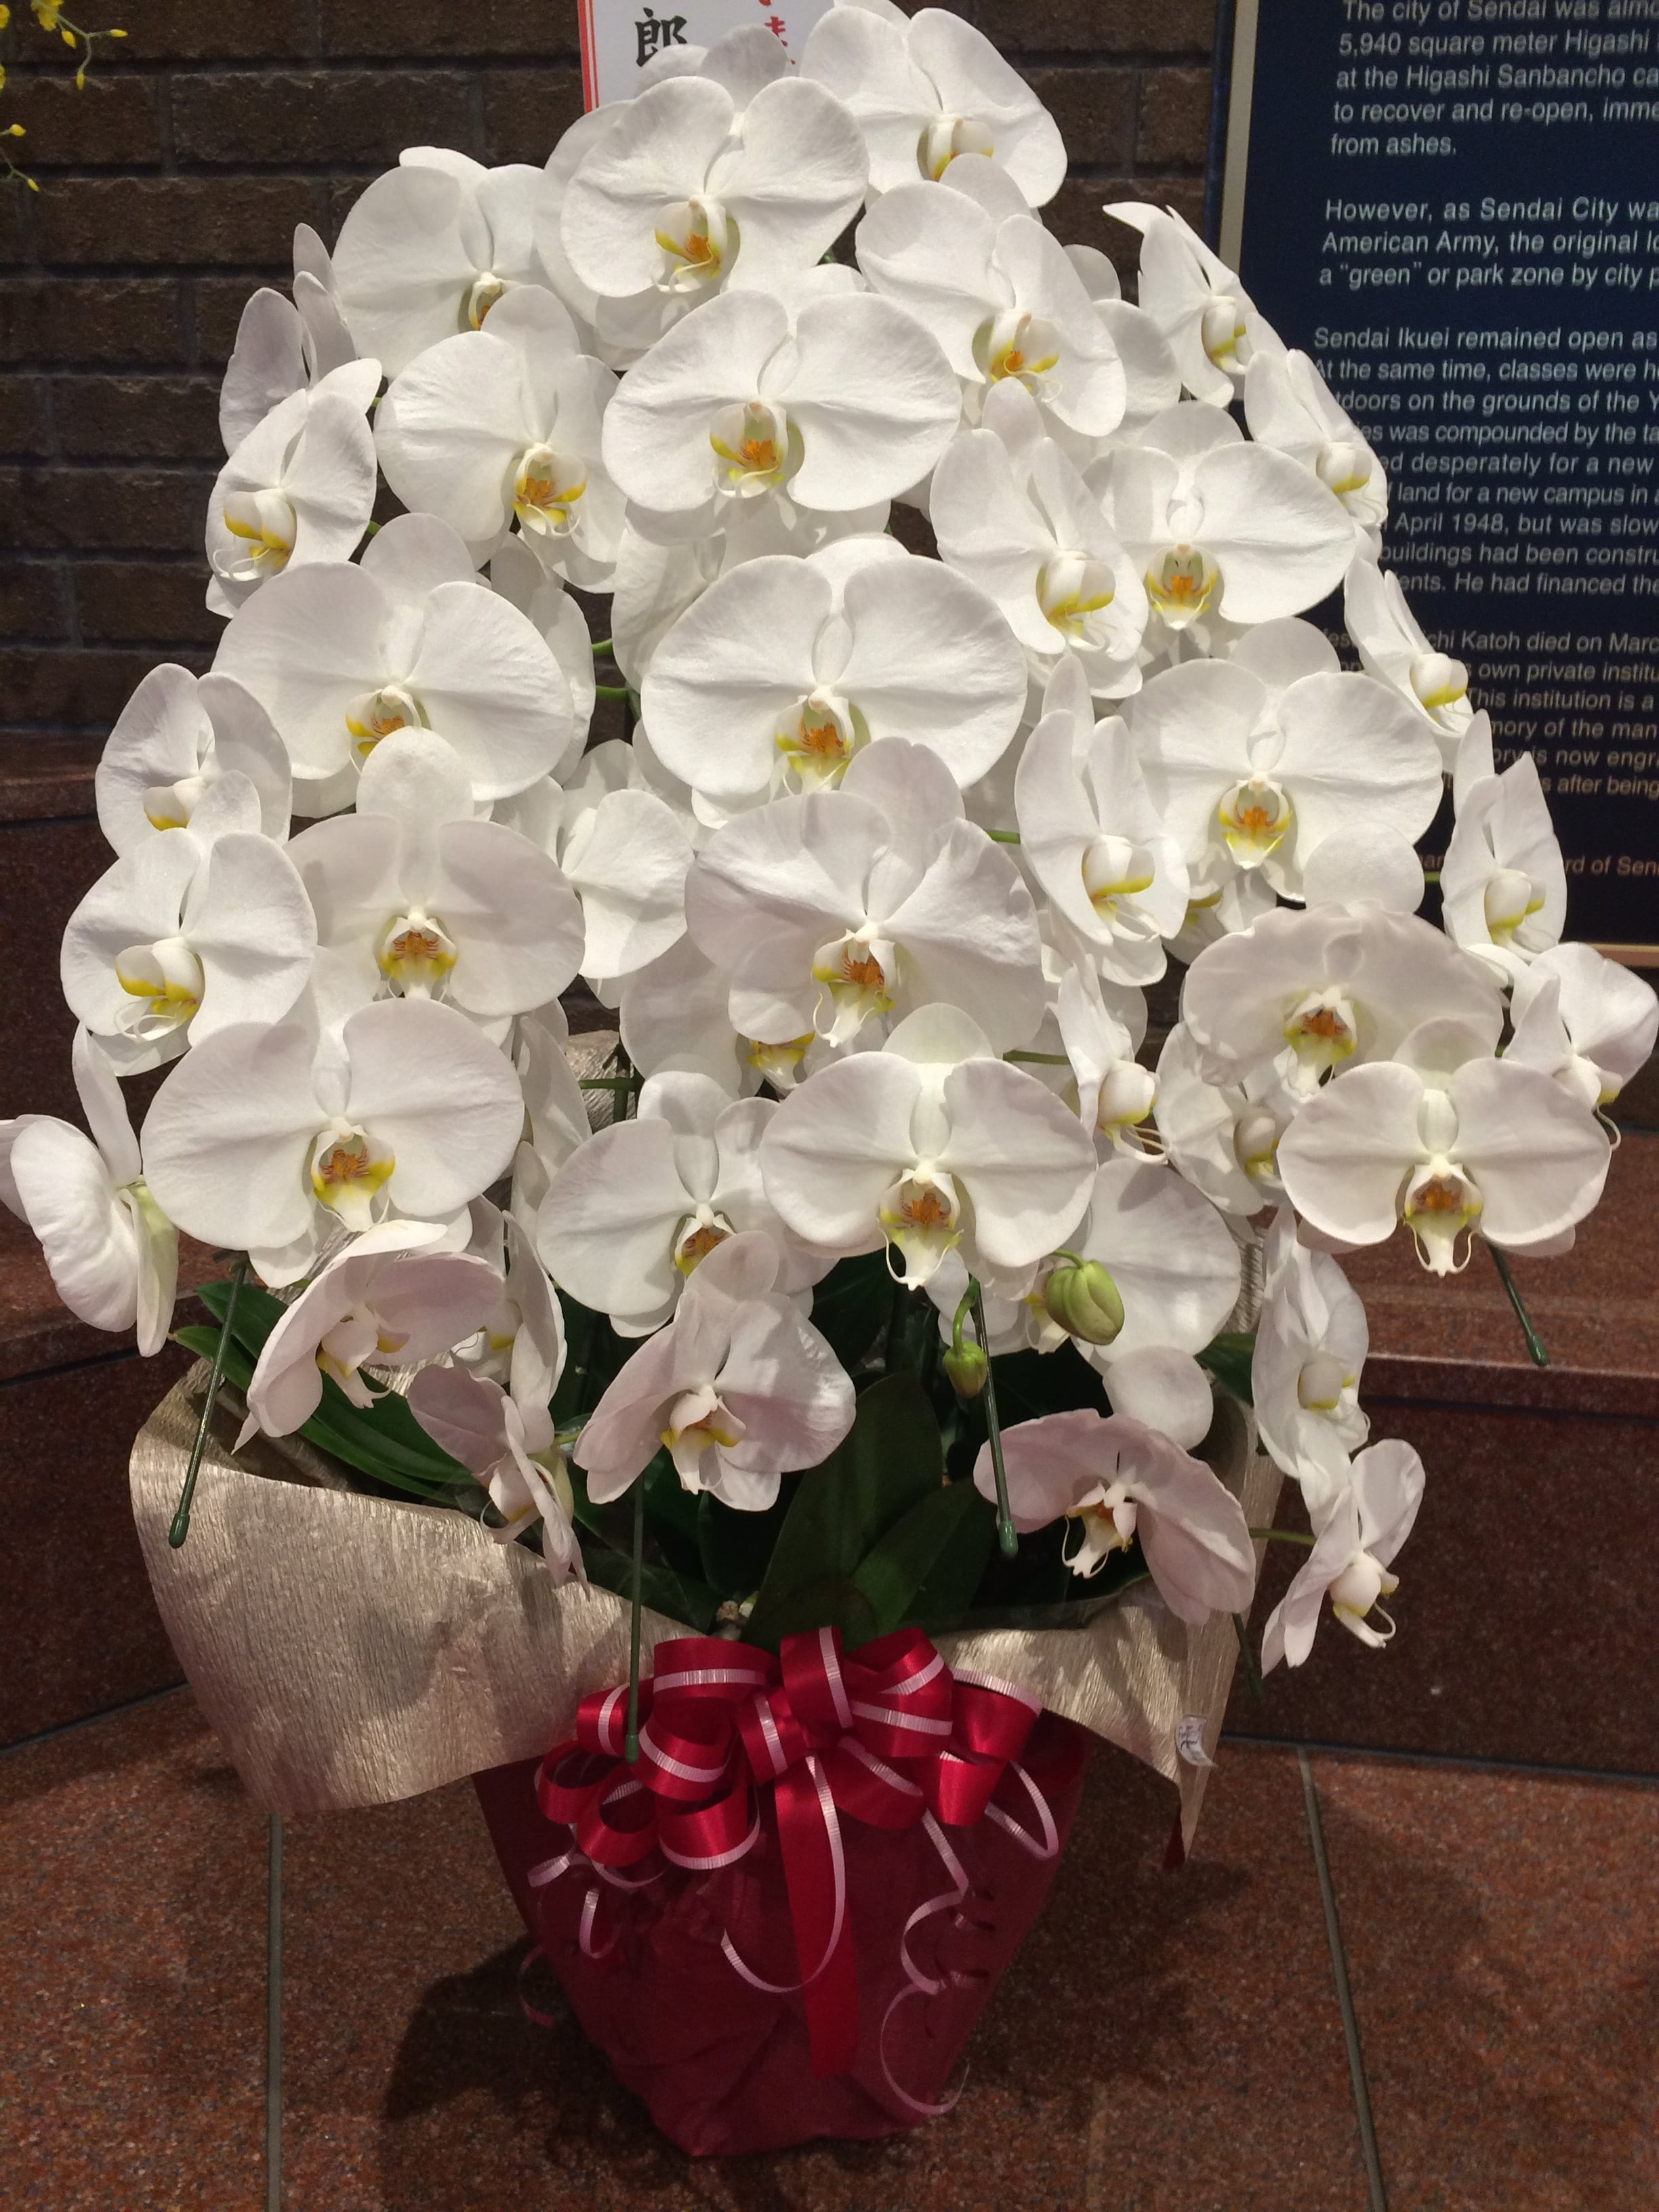 Beautiful orchids displays were throughout the school in celebration of the Sendai High School Boy's trip to the HS Baseball Championships! They lost in the final playoff, but the entire town was proud of their achievements. It was the first time in 100+ years they had made it to nationals!